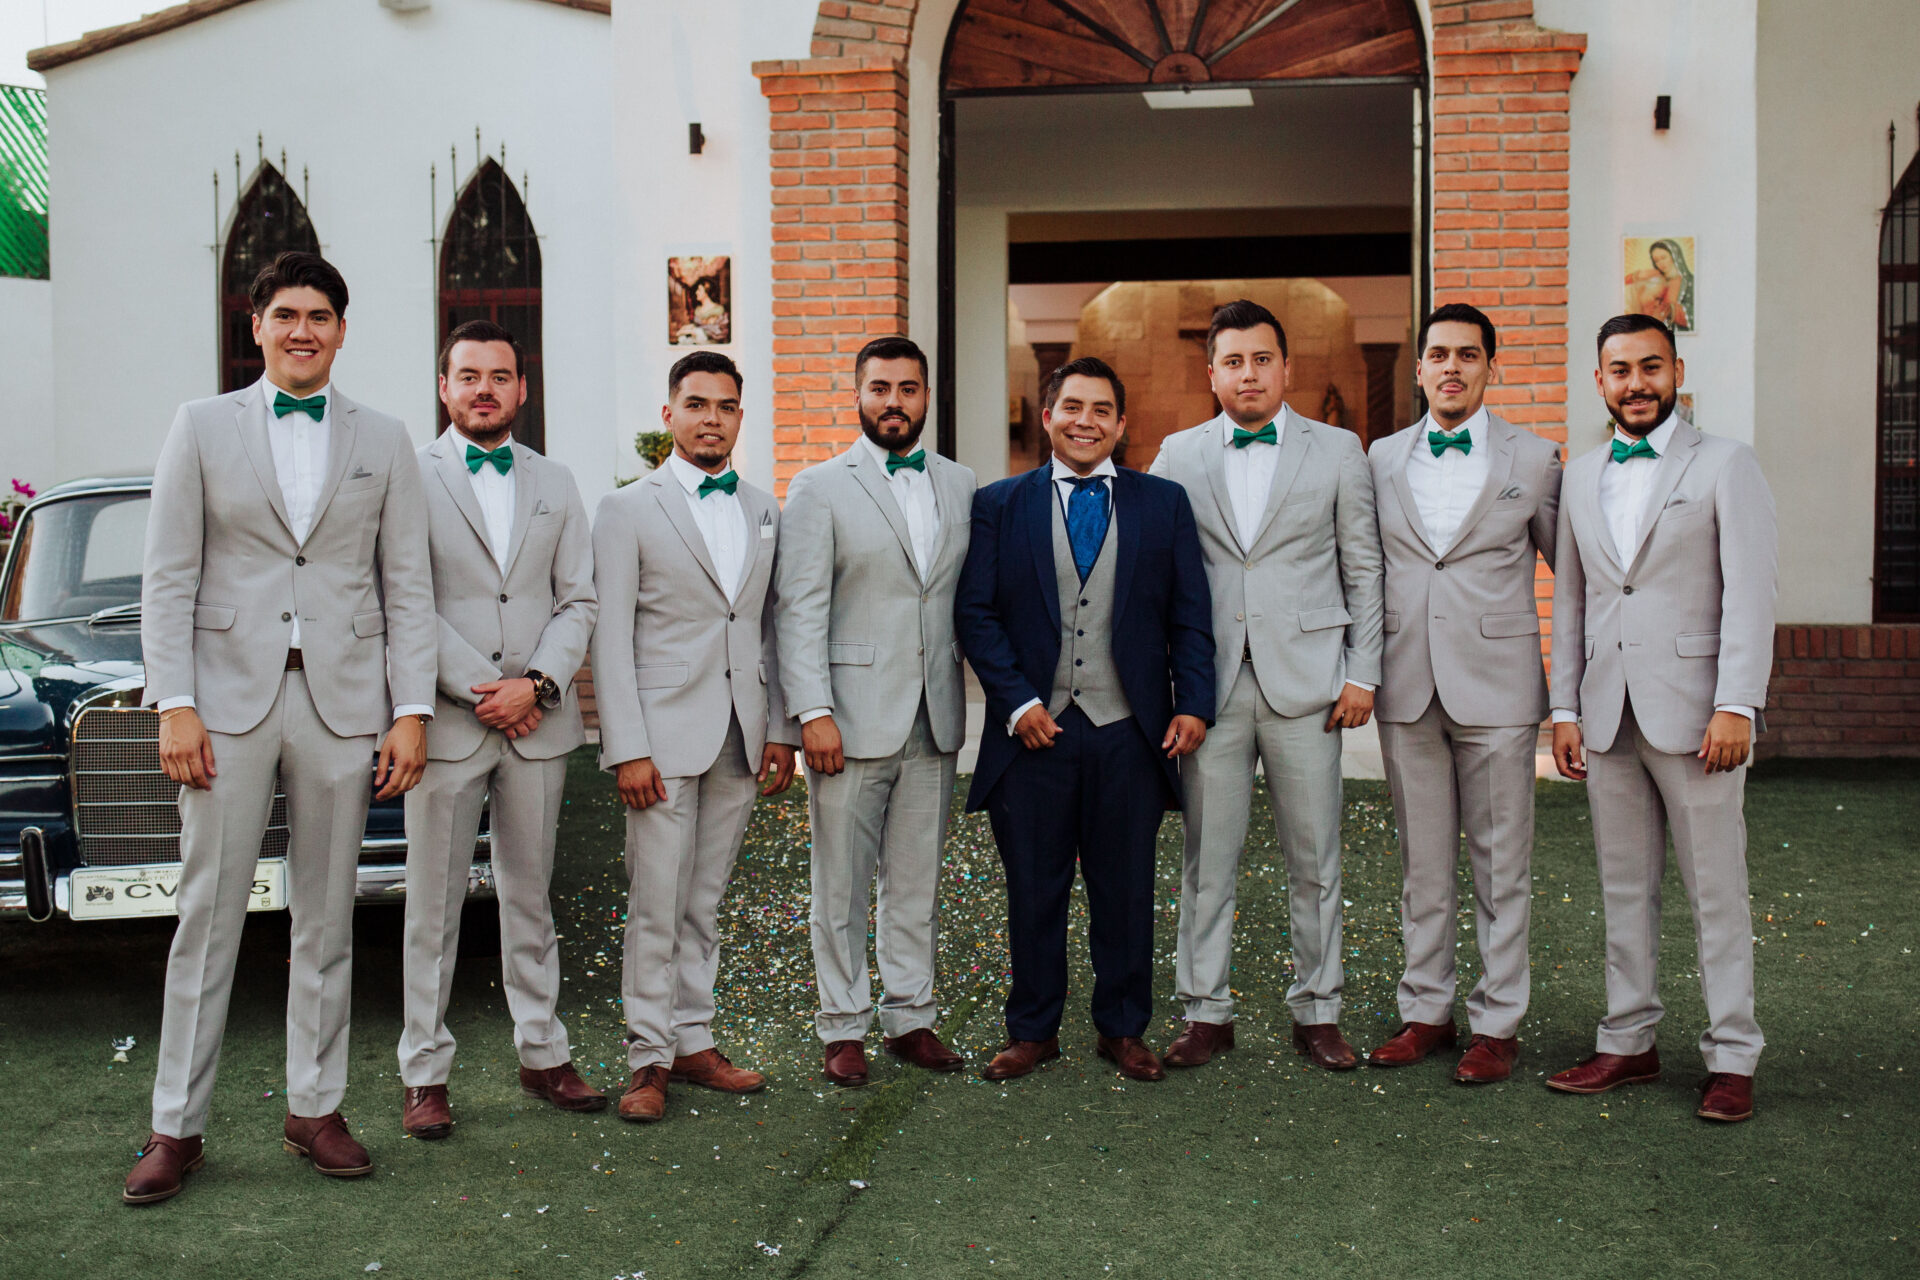 javier_noriega_fotografo_bodas_torreon_coahuila_zacatecas_wedding_photographer41a